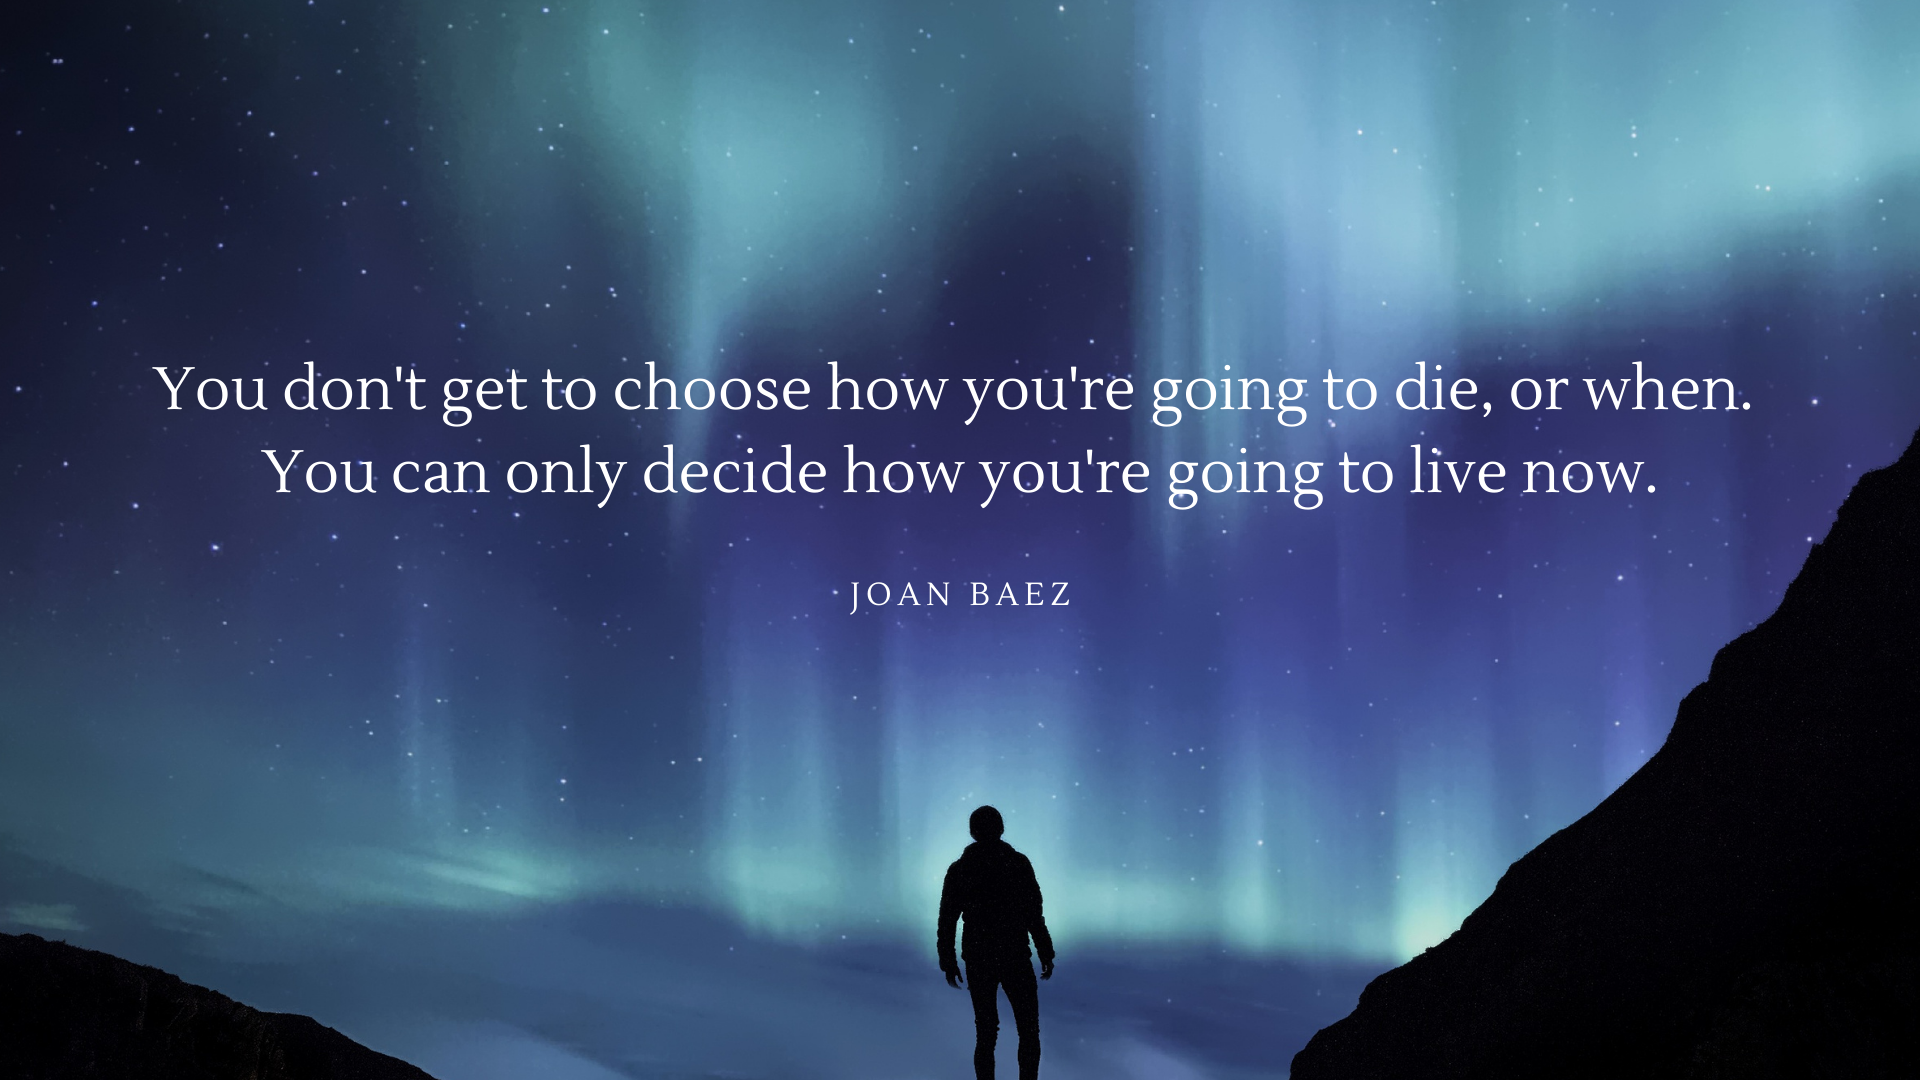 You don't get to choose how you're going to die, or when. You can only decide how you're going to live now. – Joan Baez[1920×1080][OC]